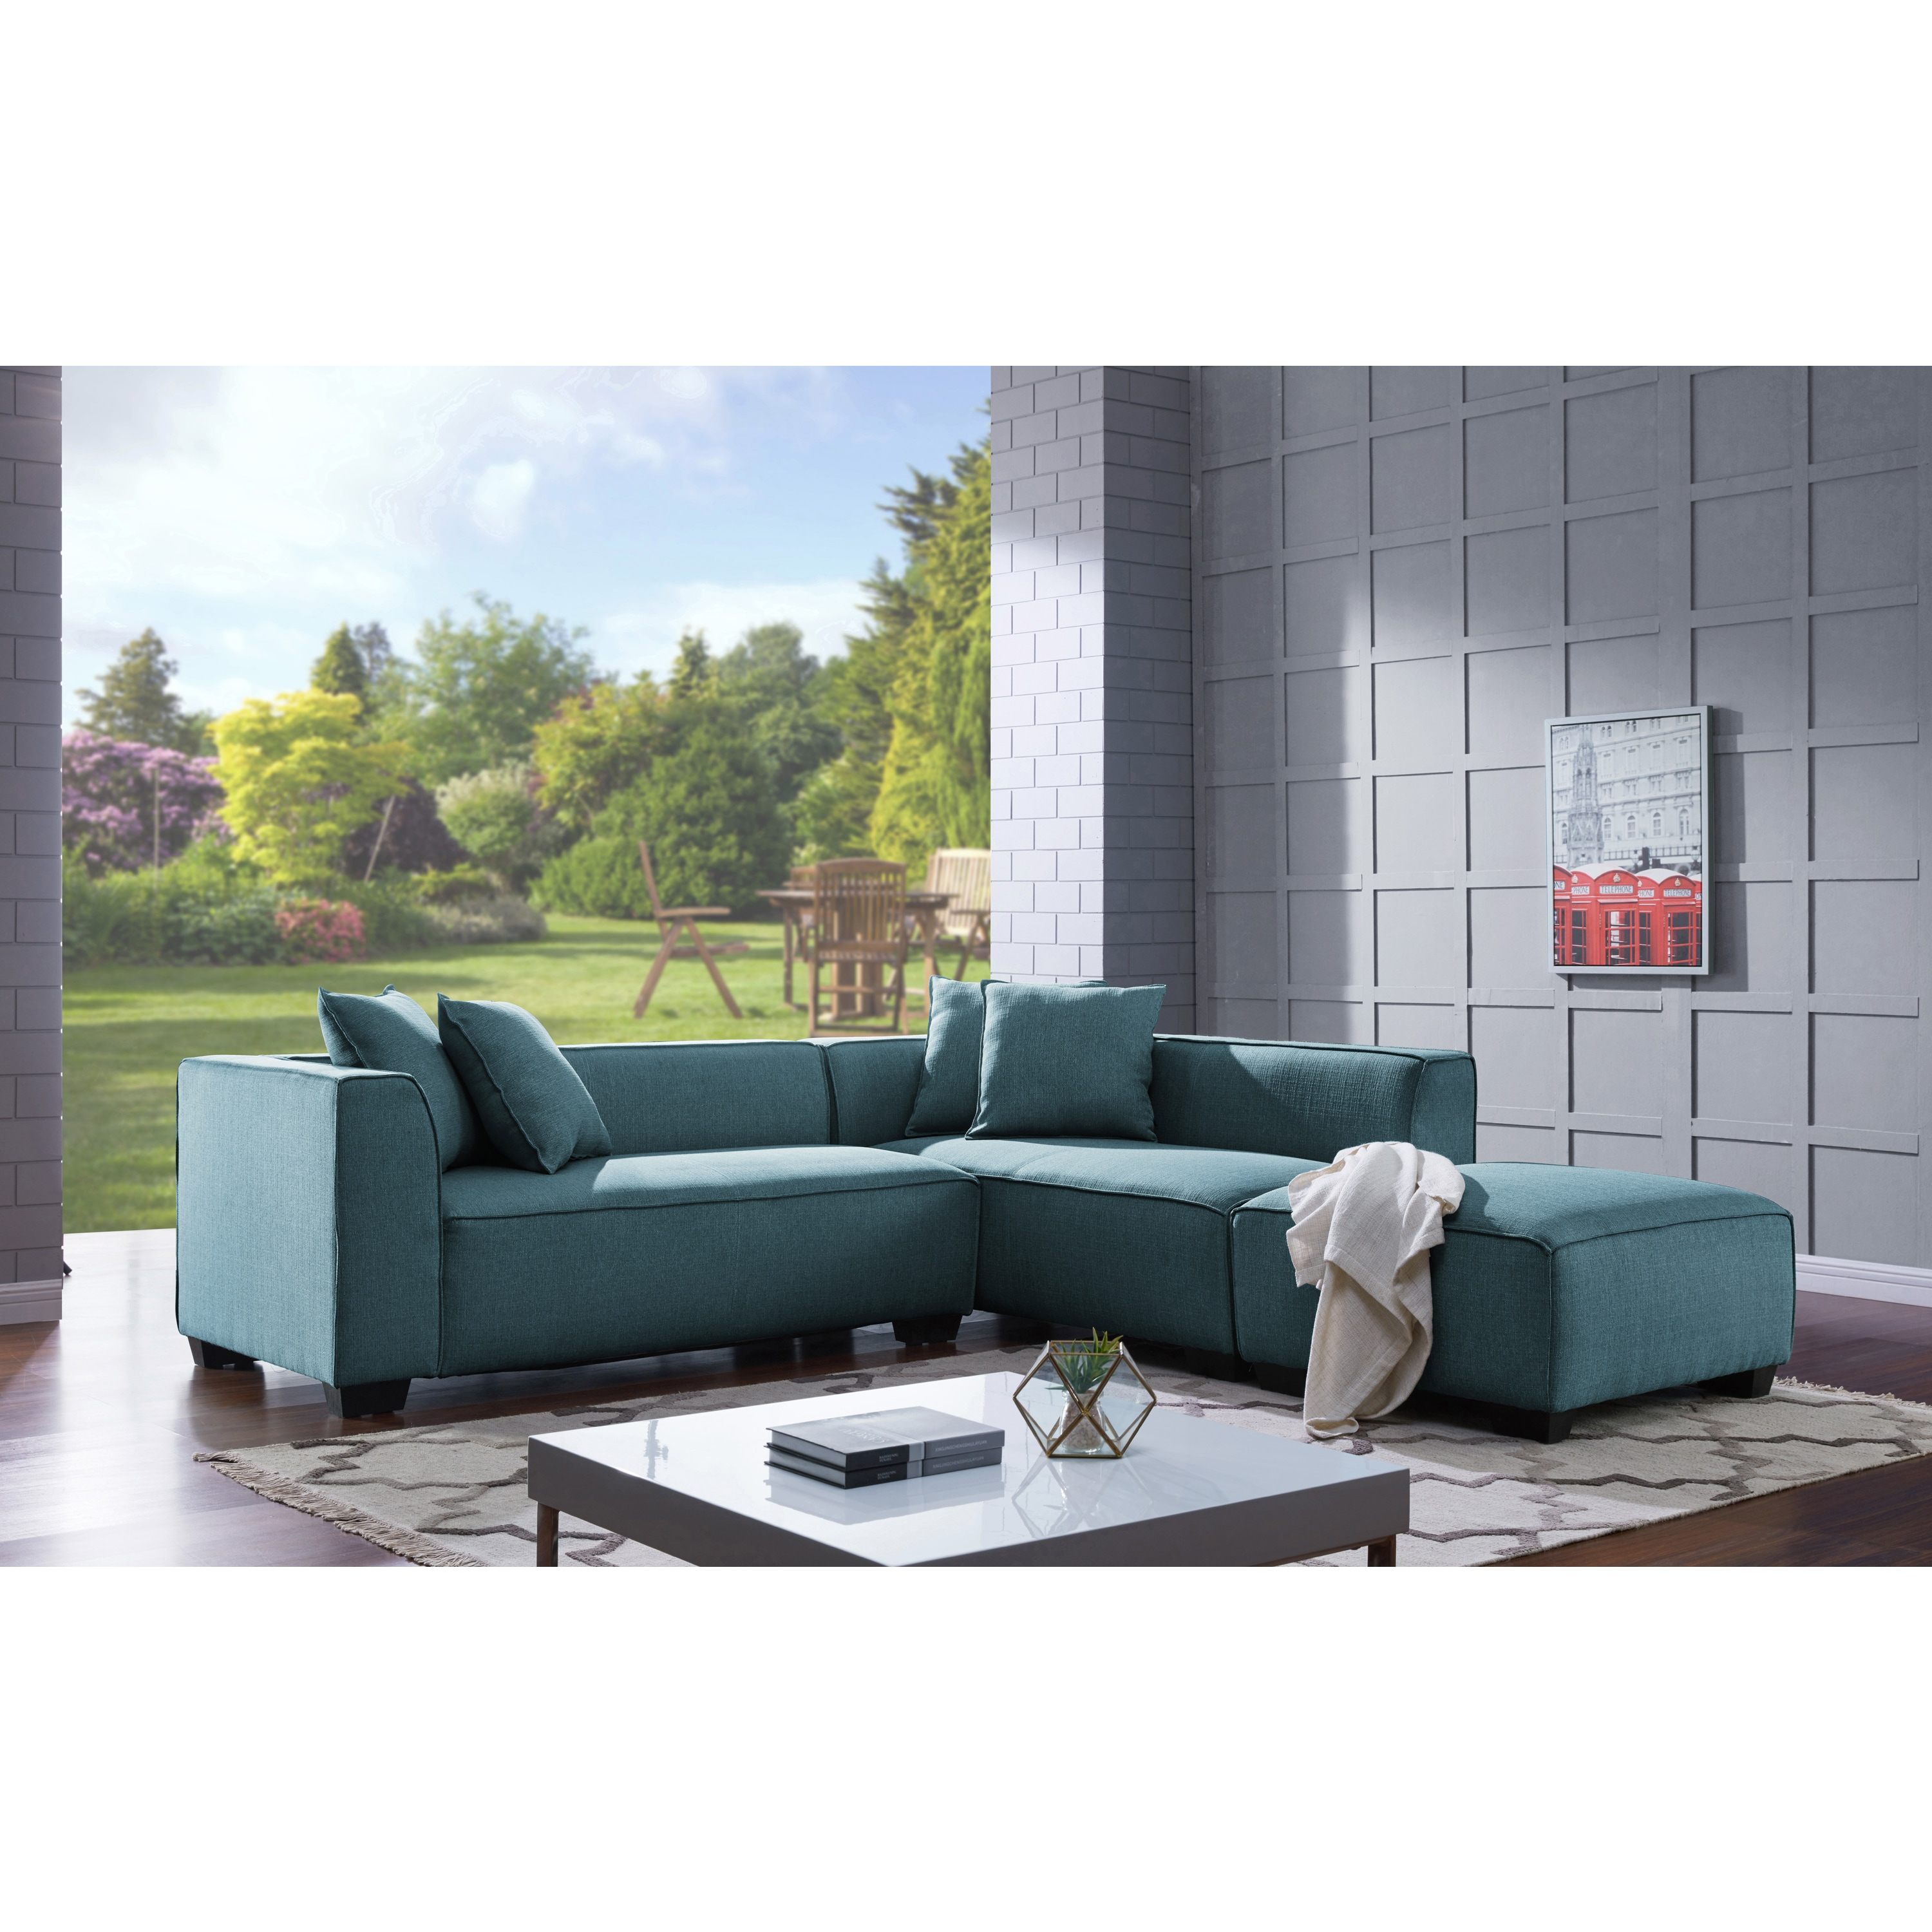 Handy Living Phoenix Blue Sectional Sofa With Ottoman On Sale Overstock 18058315